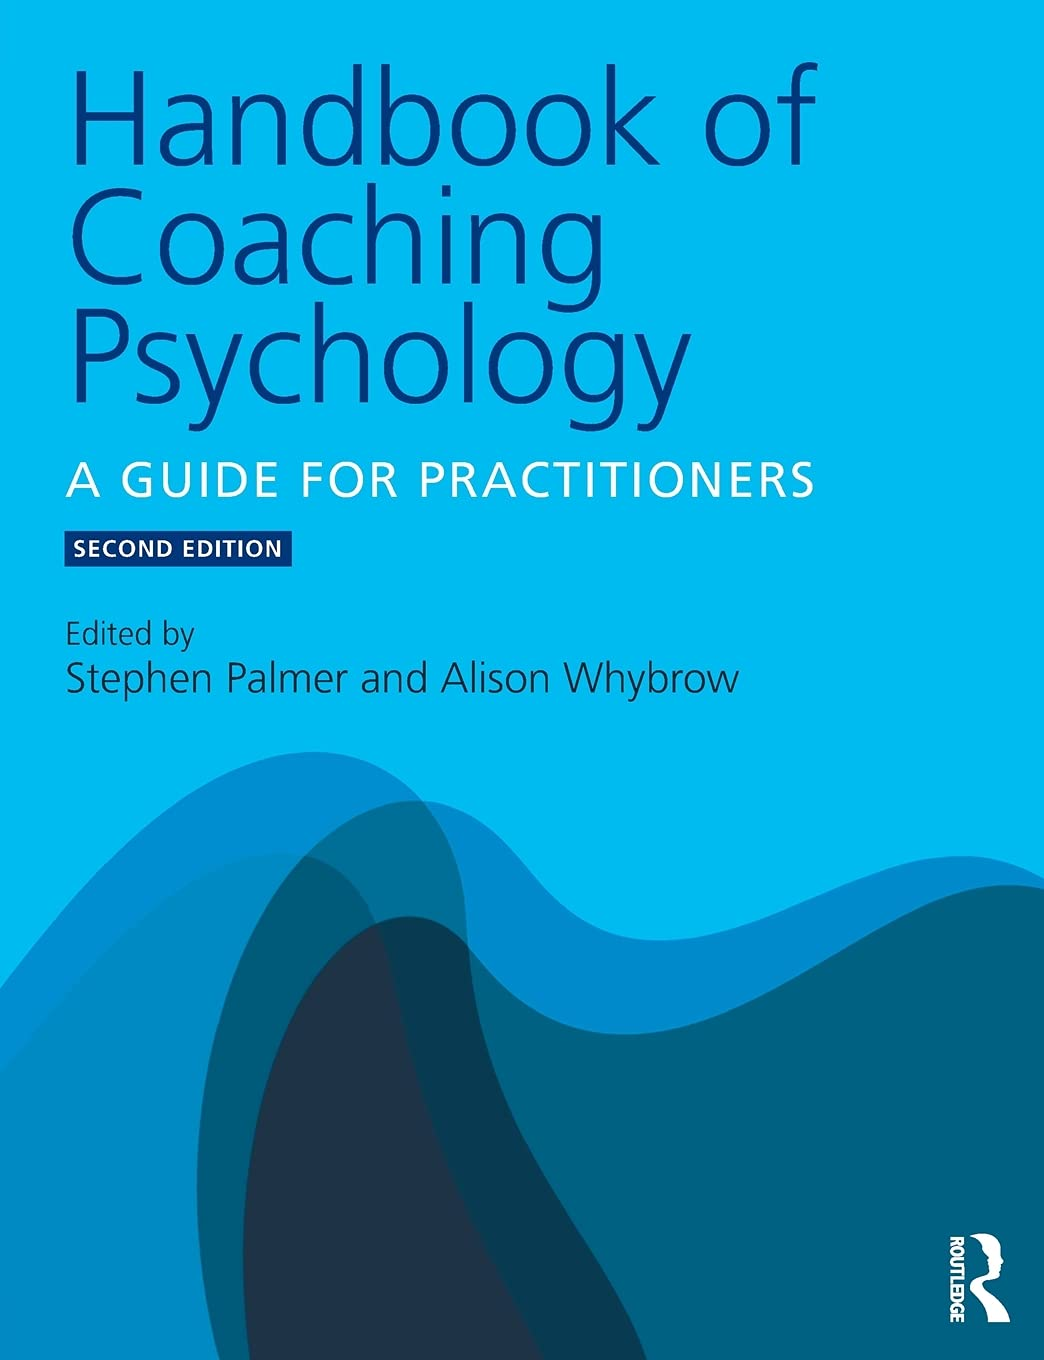 Handbook of Coaching Psychology: A Guide for Practitioners Paperback – Illustrated